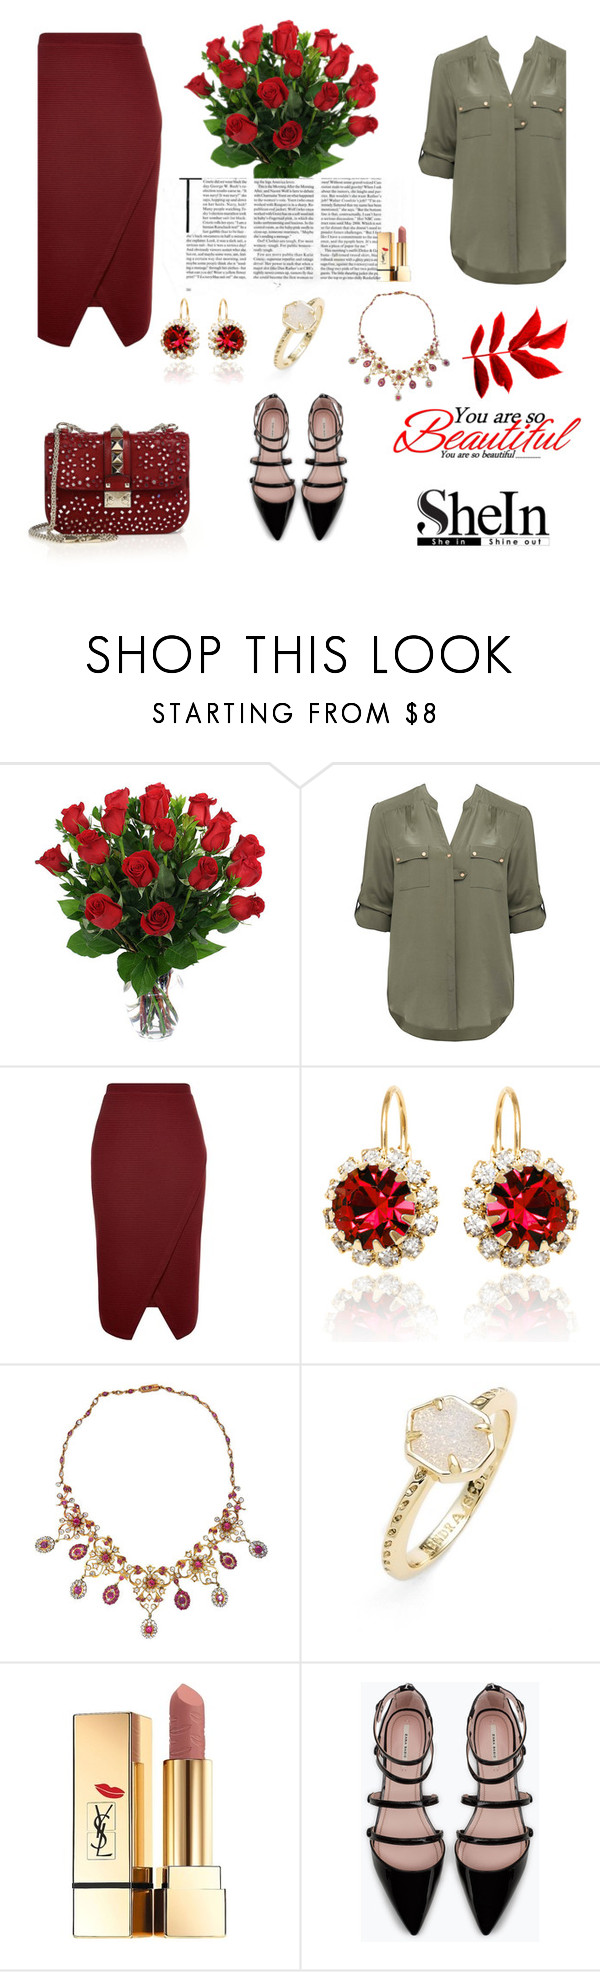 """""""Boring time"""" by mell-2405 ❤ liked on Polyvore featuring Forever New, Sevil Designs, Kendra Scott, Yves Saint Laurent, Zara and Valentino"""